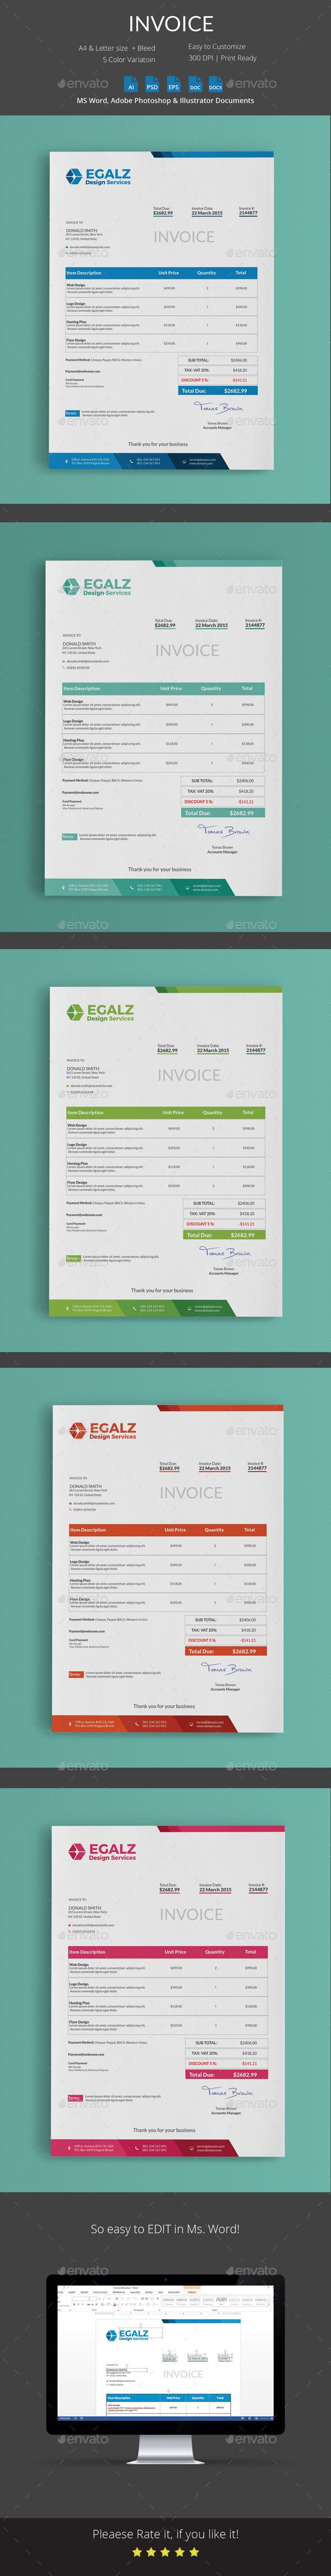 Invoice Template PSD Vector EPS AI Download